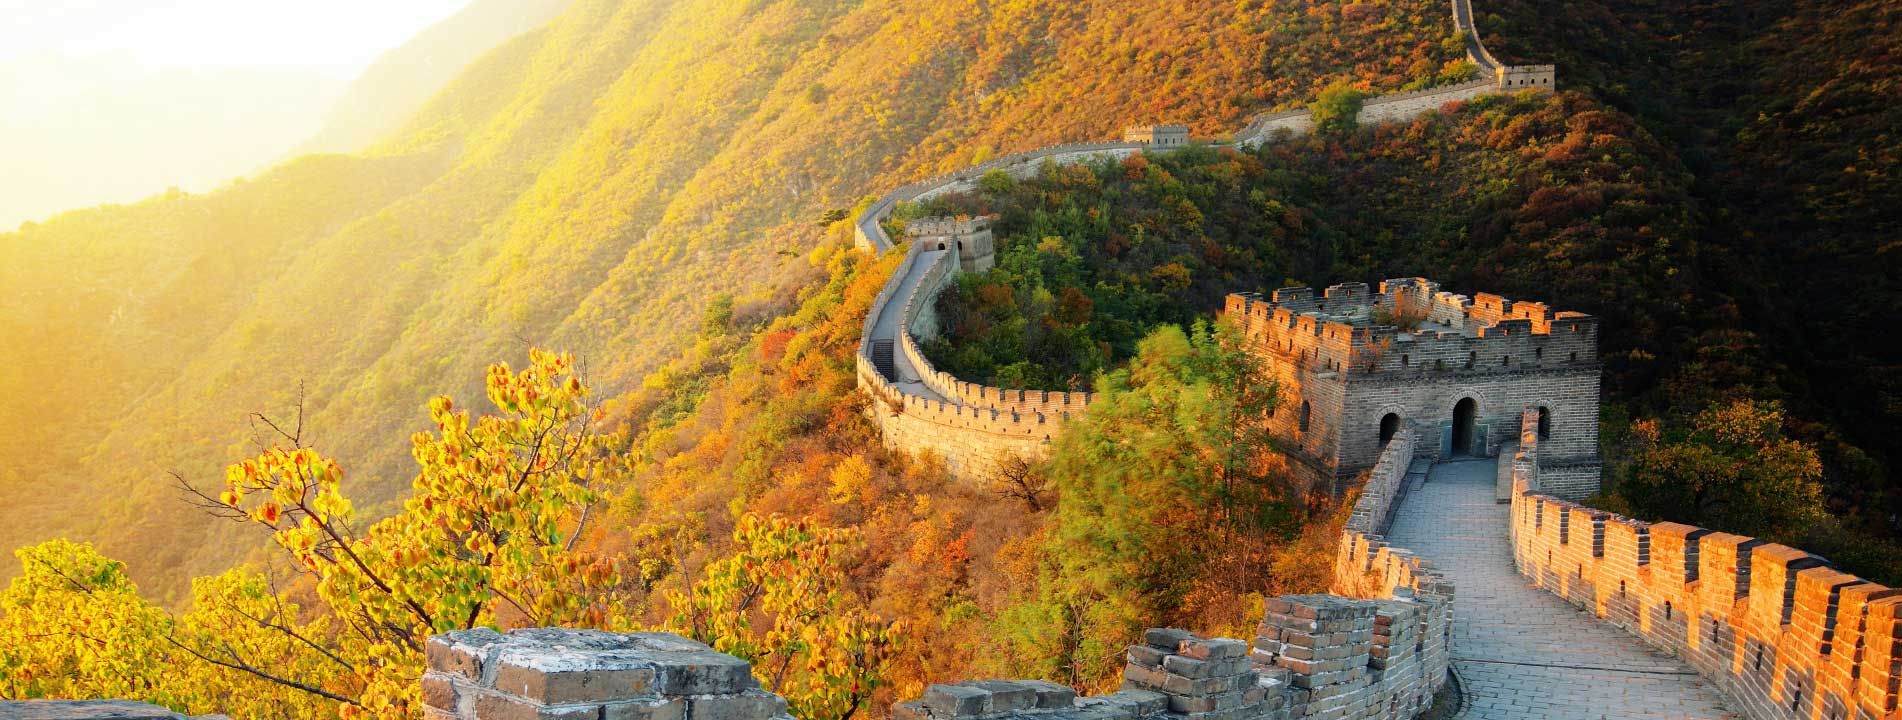 Best China Tours 2020